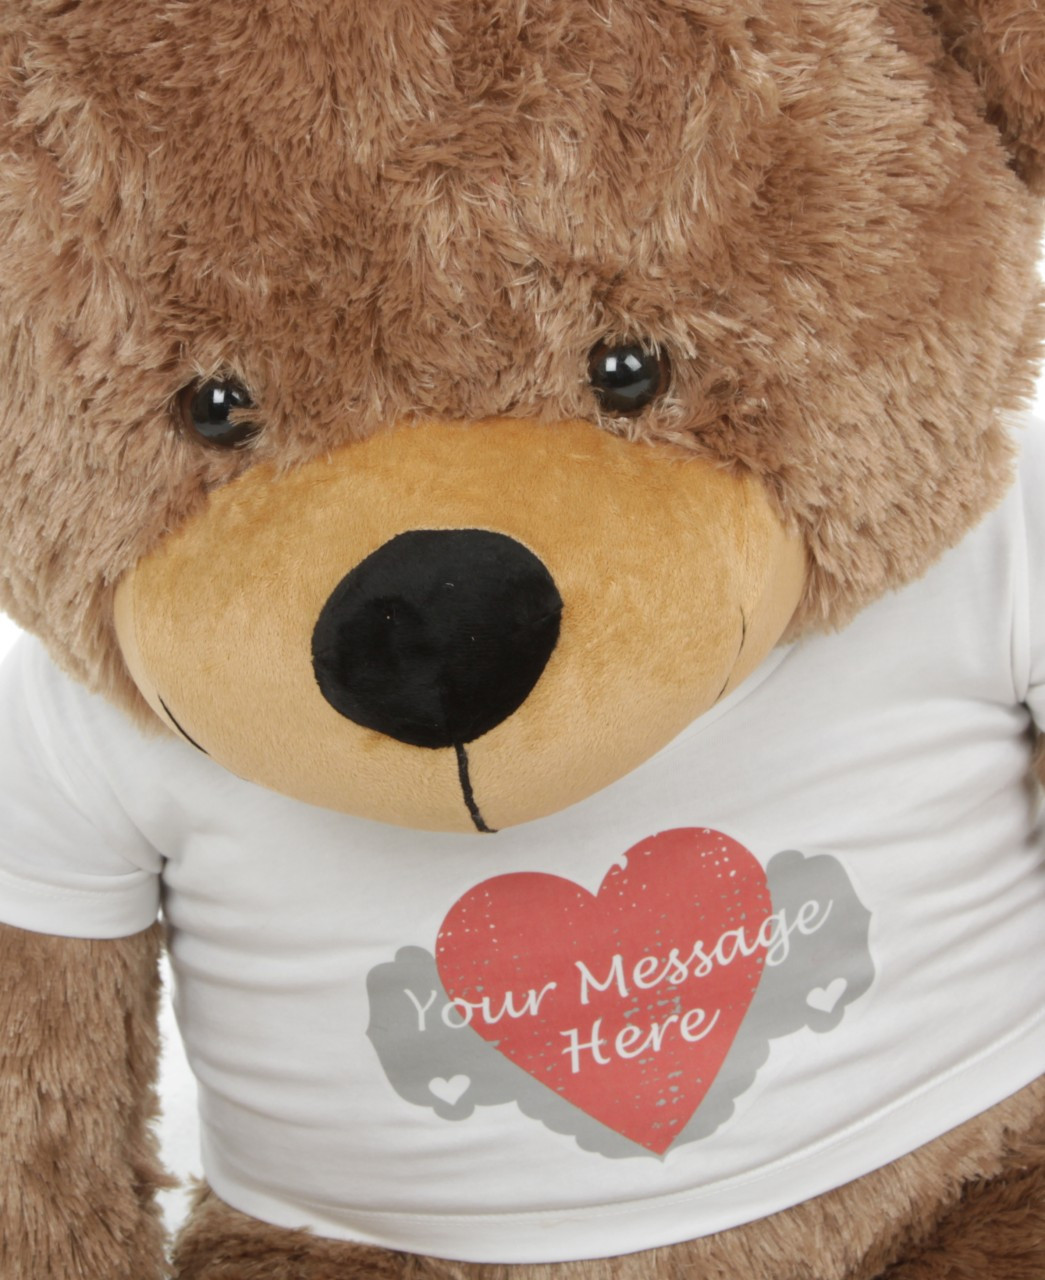 Sunny Cuddles Mocha Personalized Teddy Bear with Heart Print T-shirt